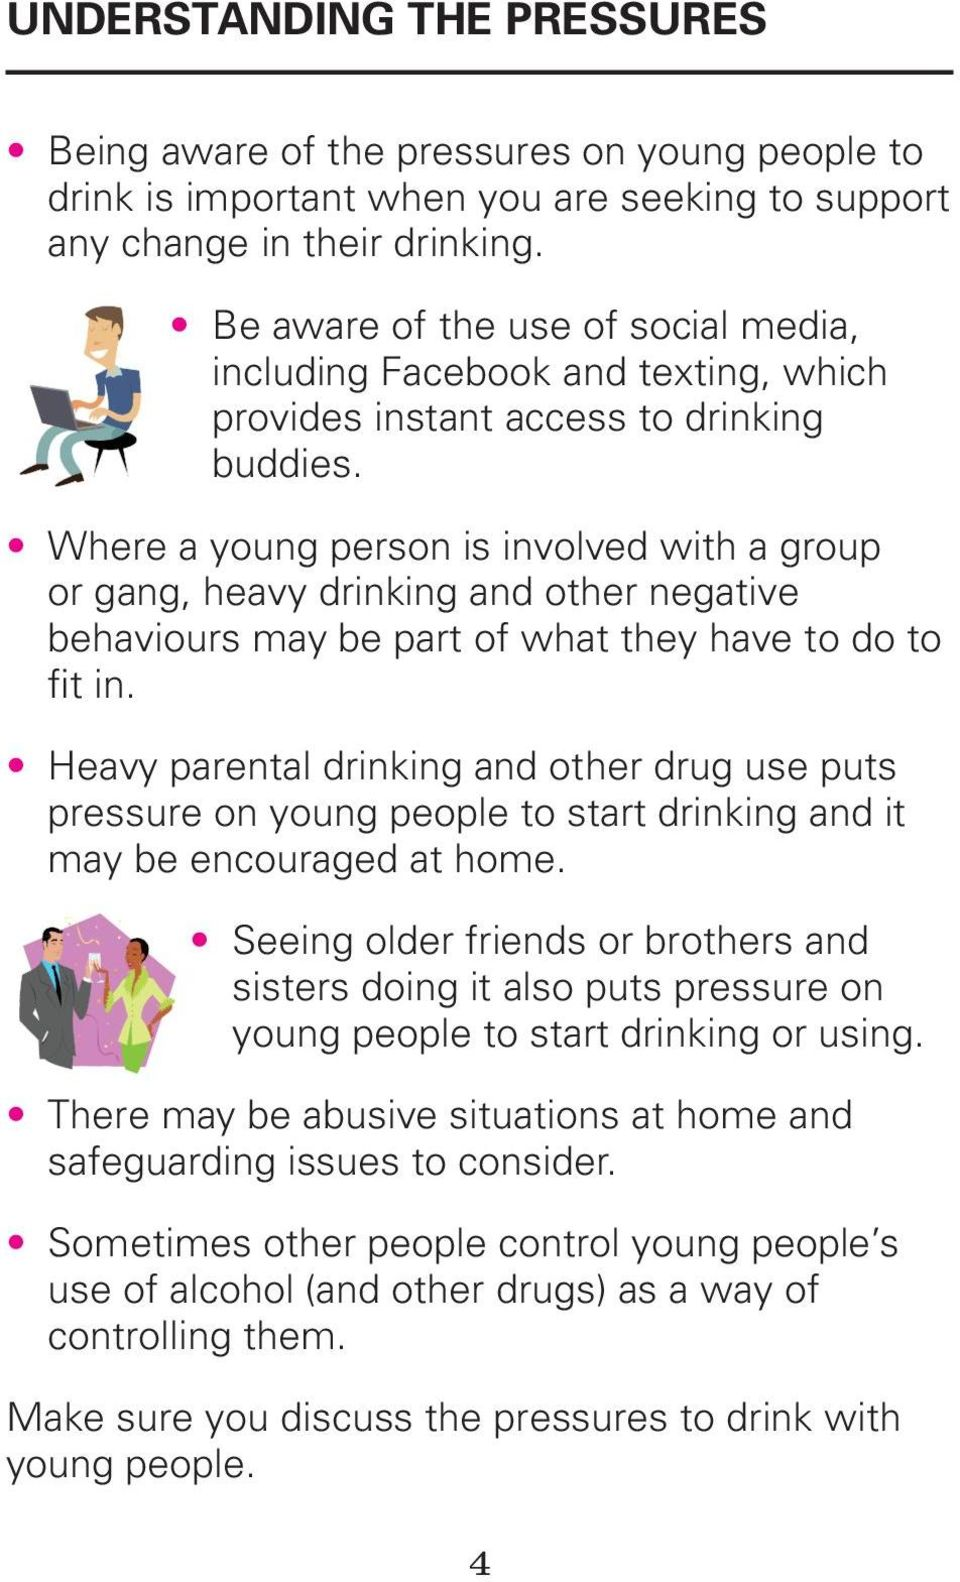 Where a young person is involved with a group or gang, heavy drinking and other negative behaviours may be part of what they have to do to fit in.